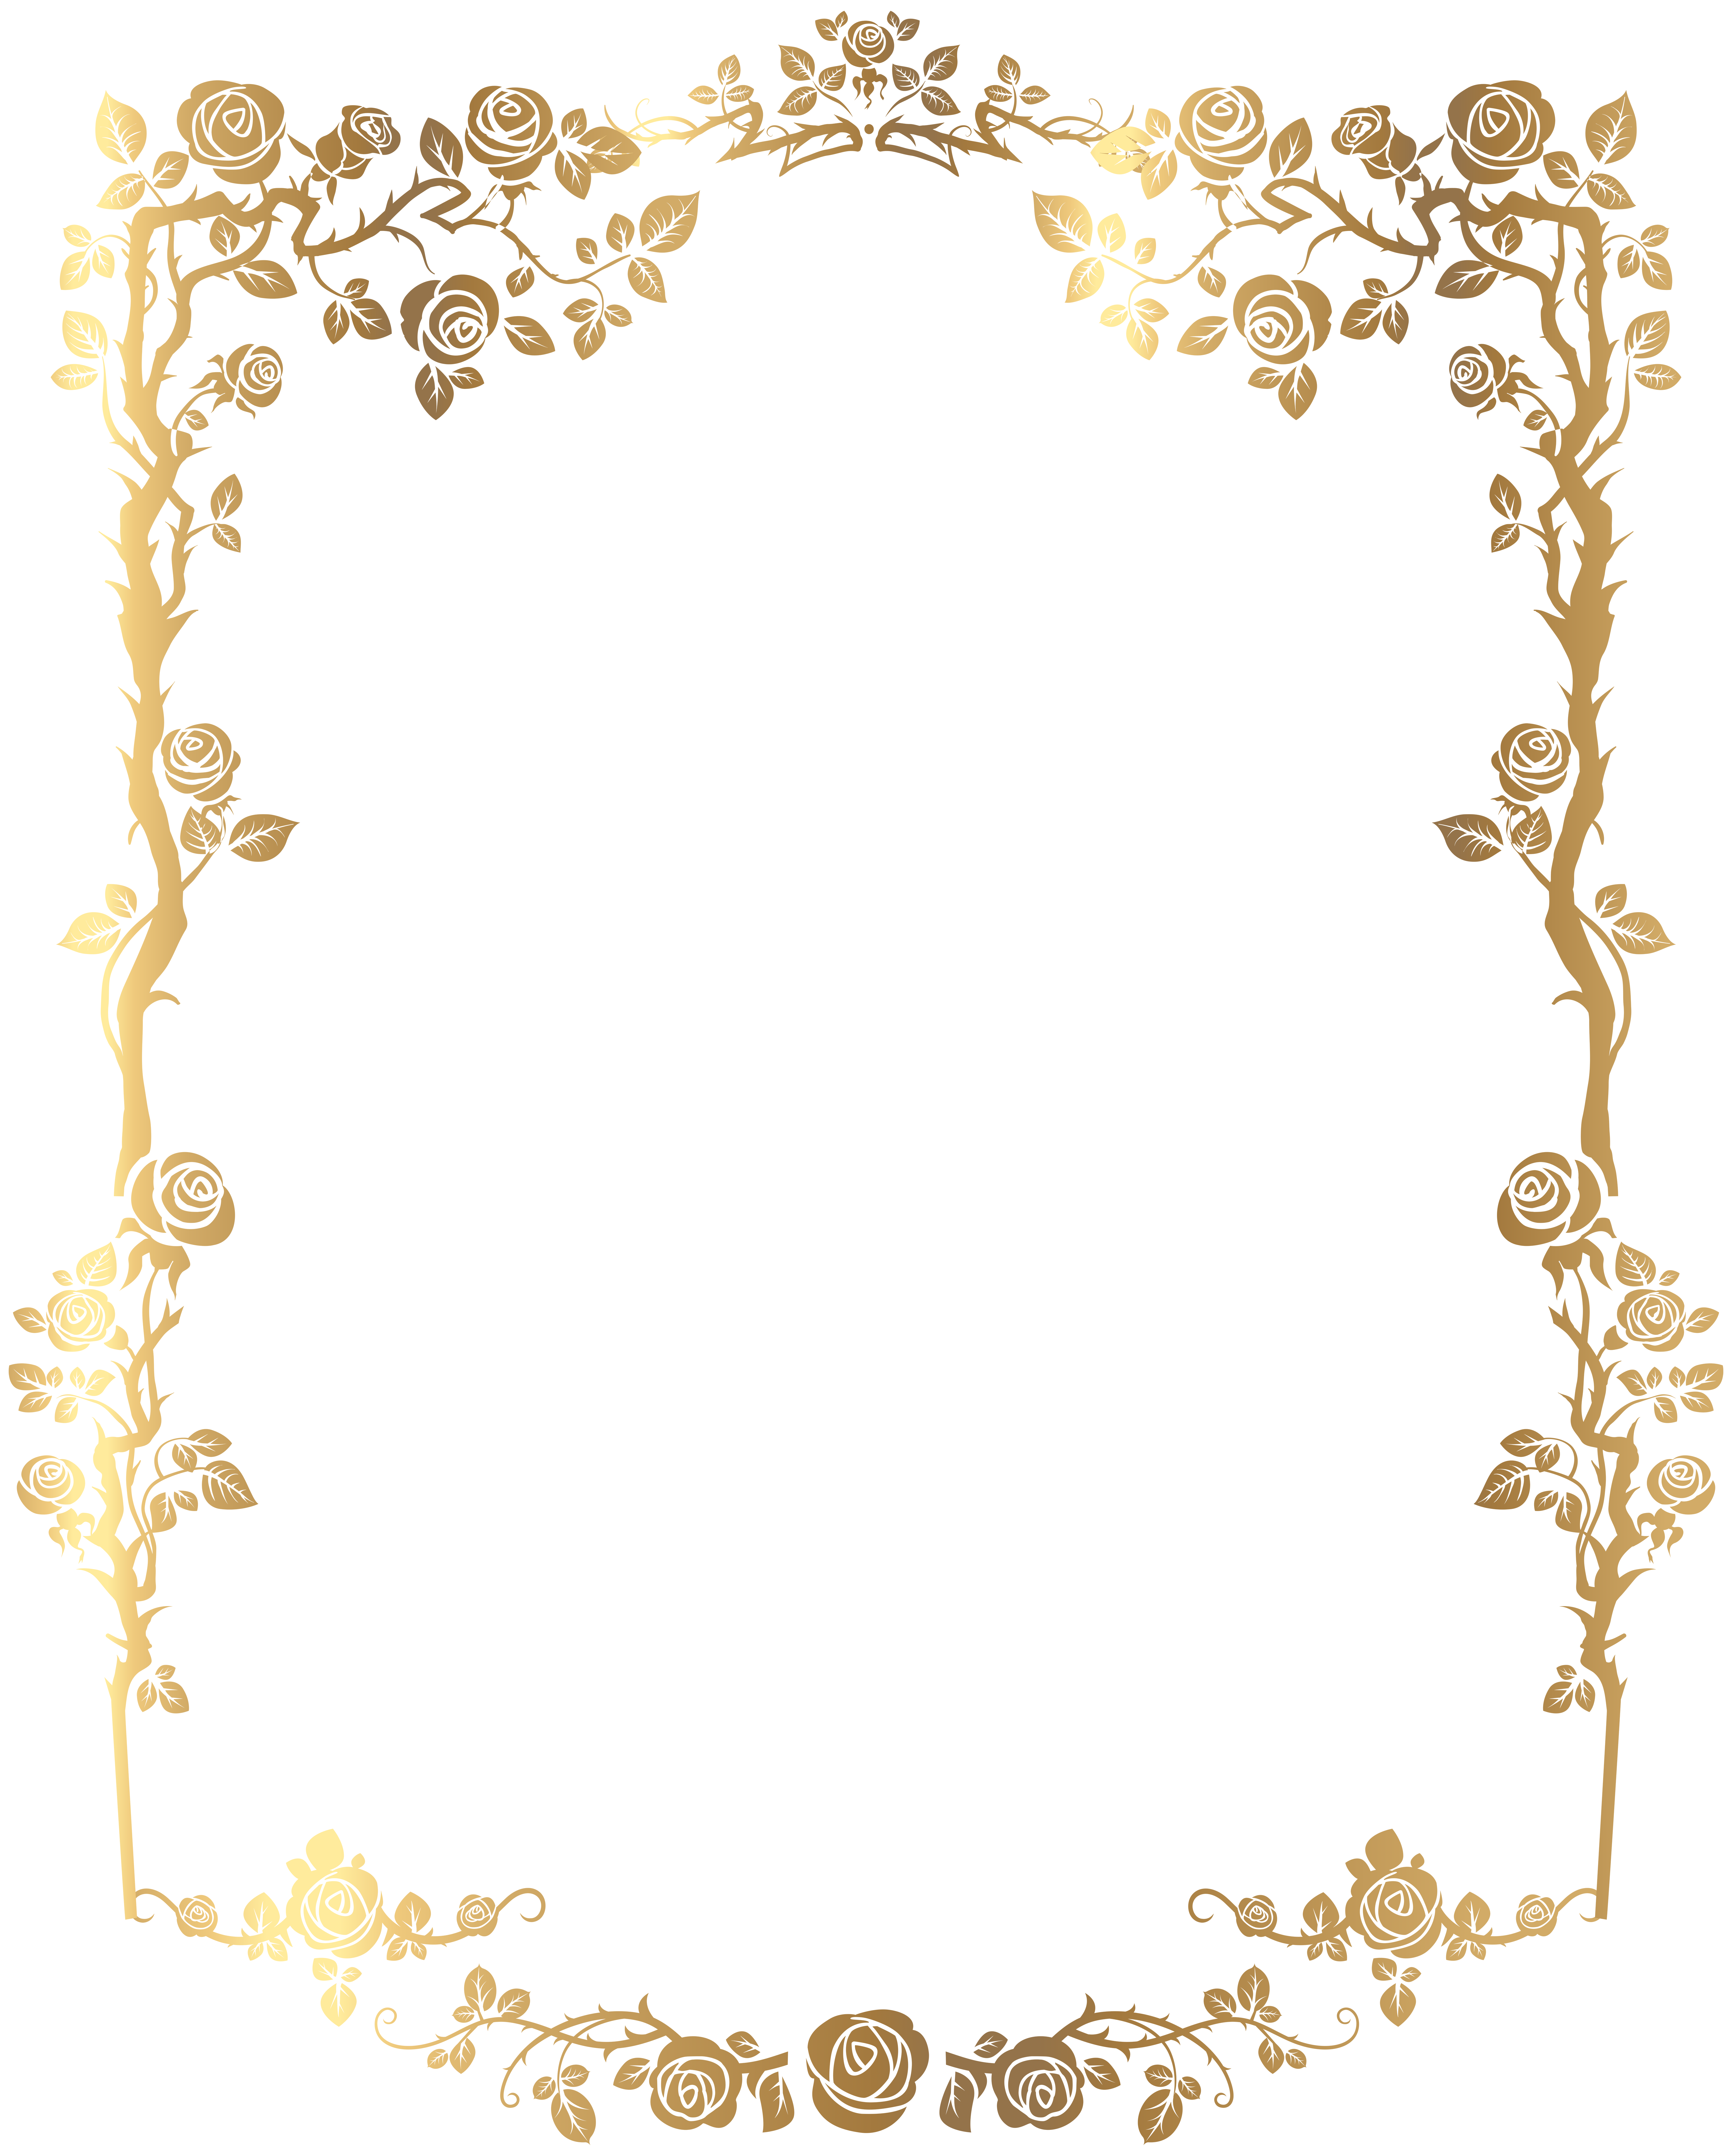 decorative clipart frames - photo #31